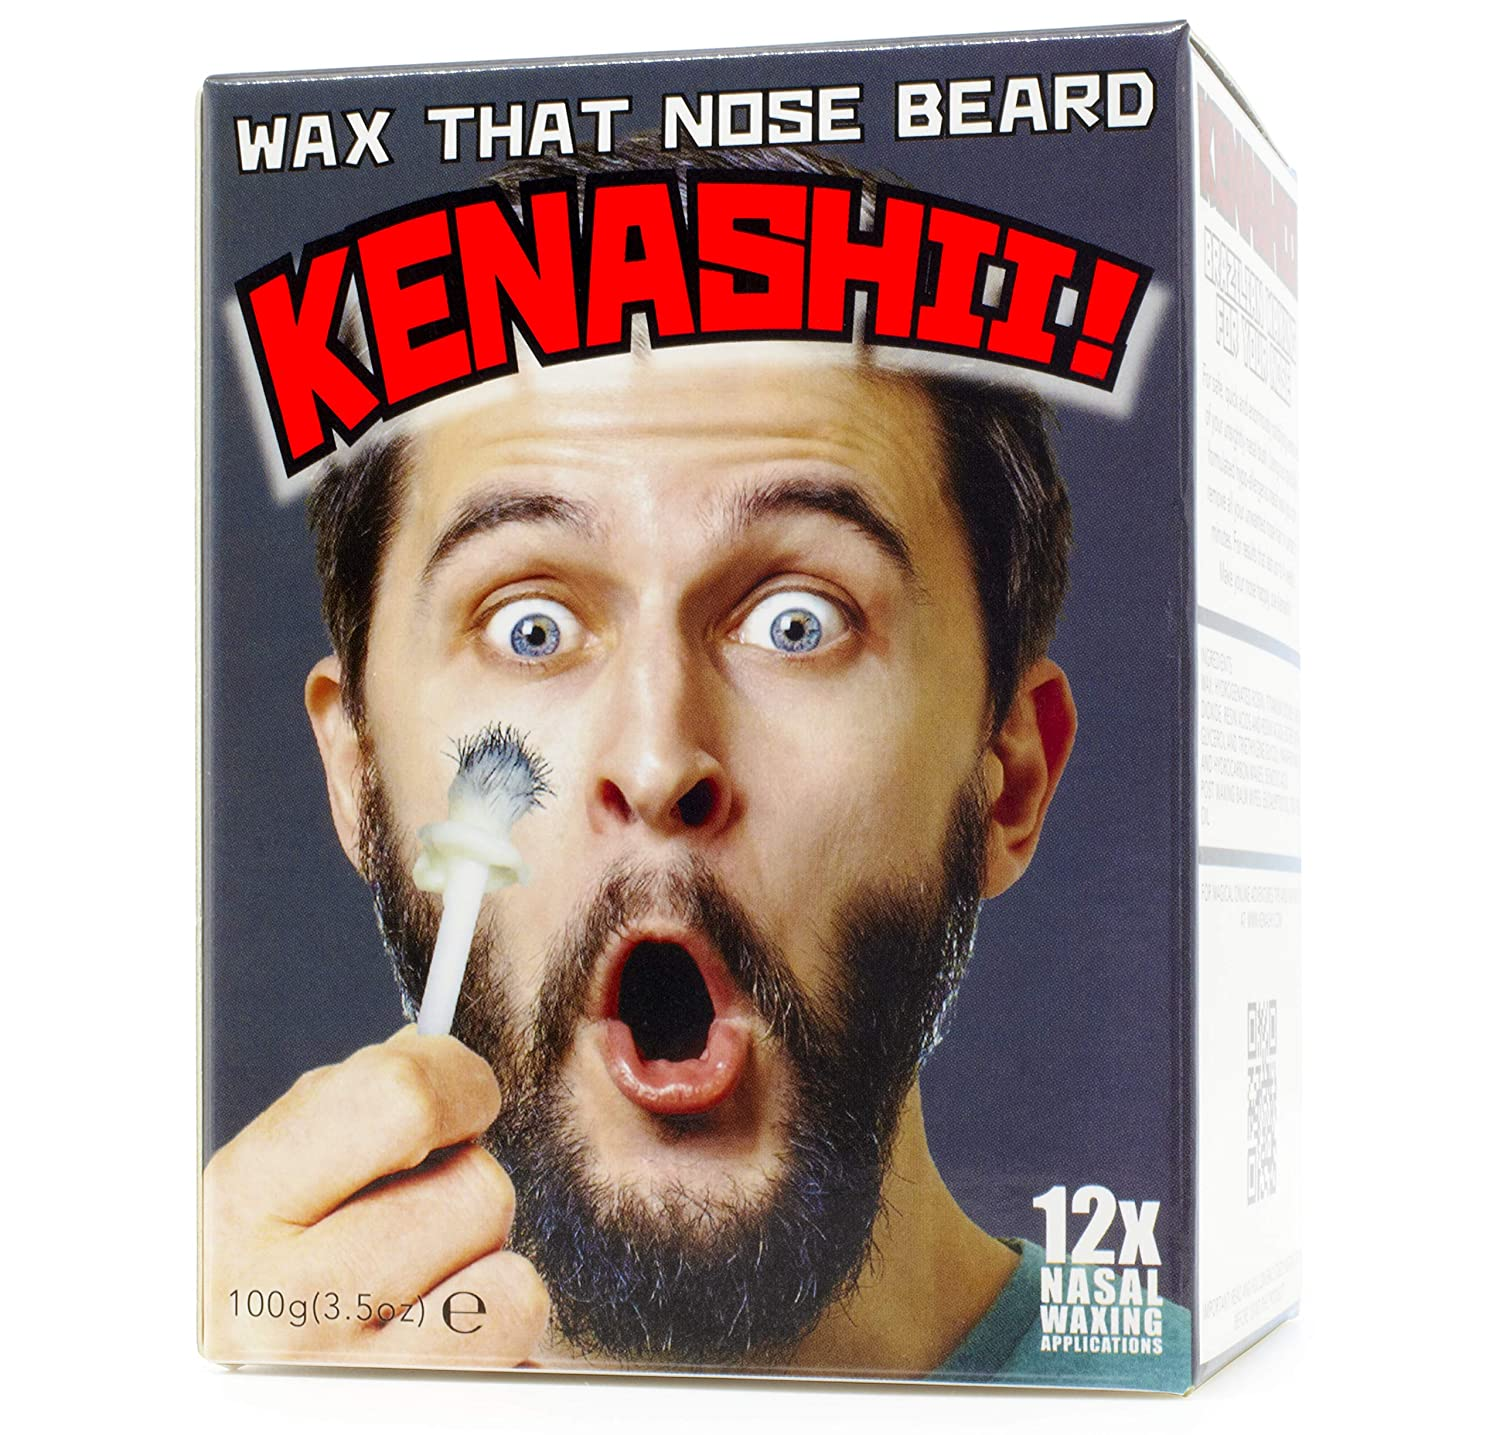 Nose Wax Kit, 100 g Wax, 24 Applicators. The Original & Best Nose Hair Removal Kit from Kenashii. Nose Waxing For Men & Women. 12 Applications, 12 Post Waxing Balm Wipes, 12 Mustache Guards.